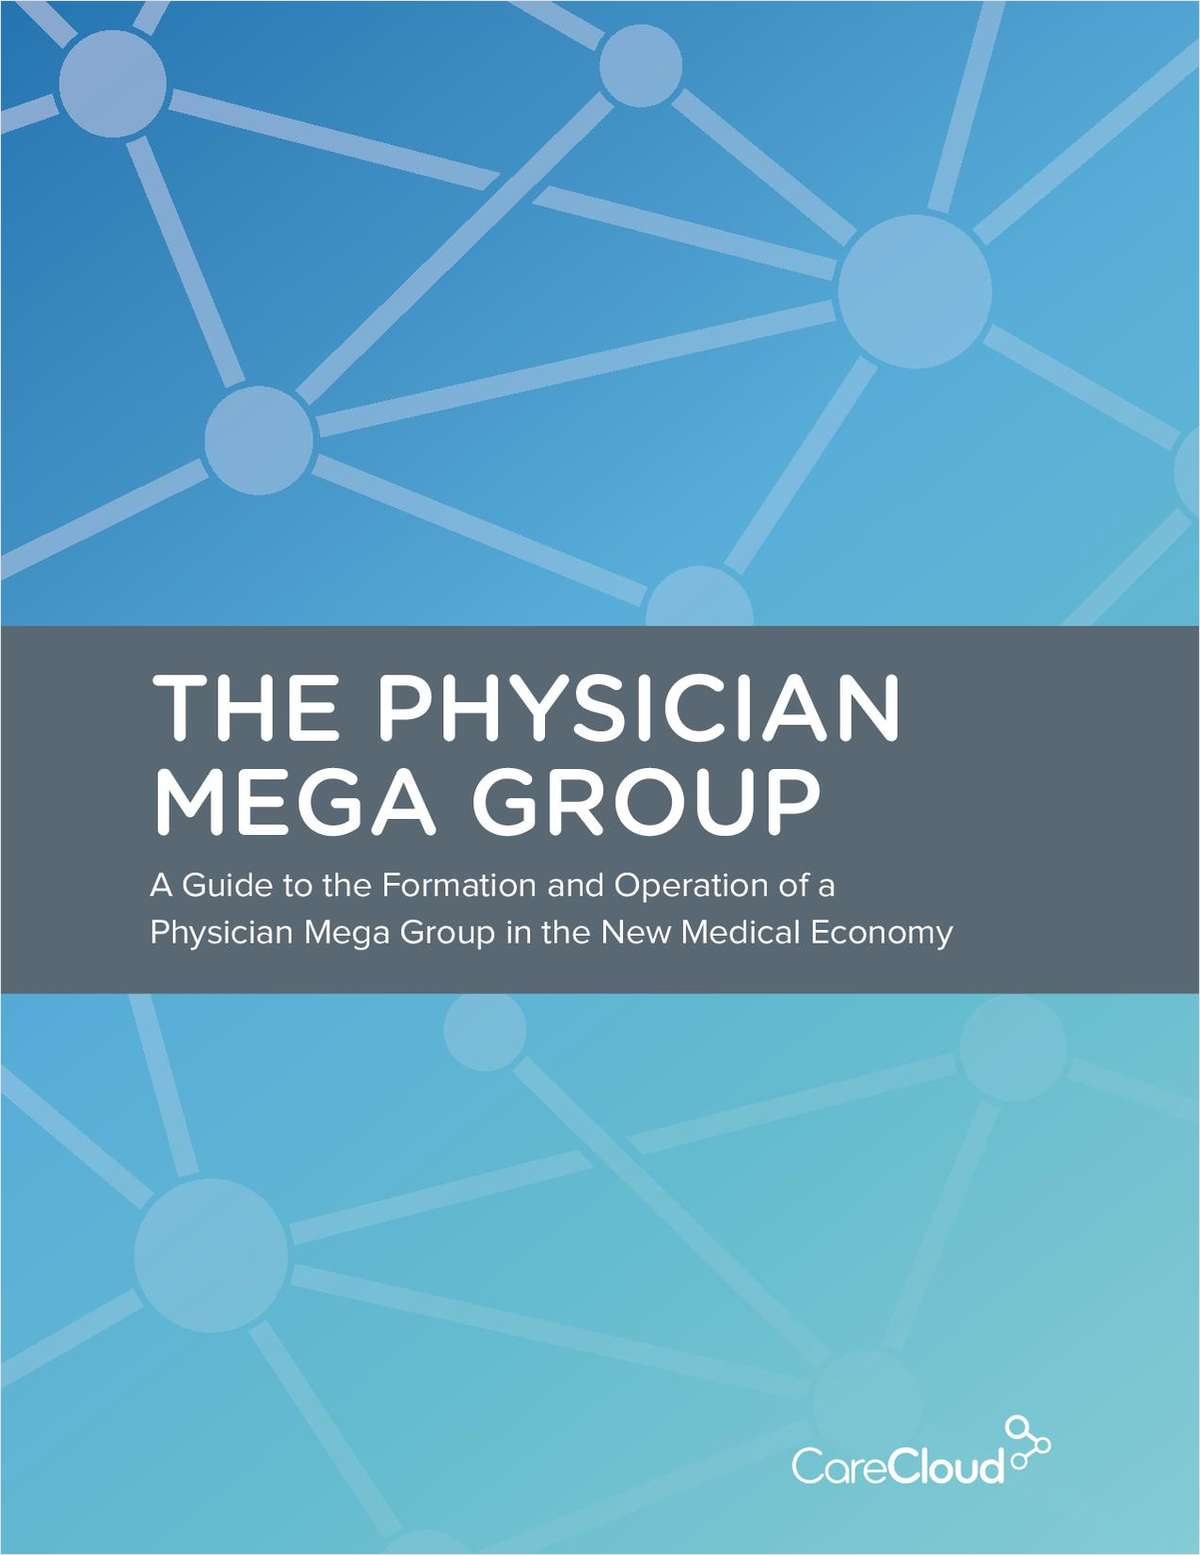 The Physician Mega Group: A Formation and Operations Guide